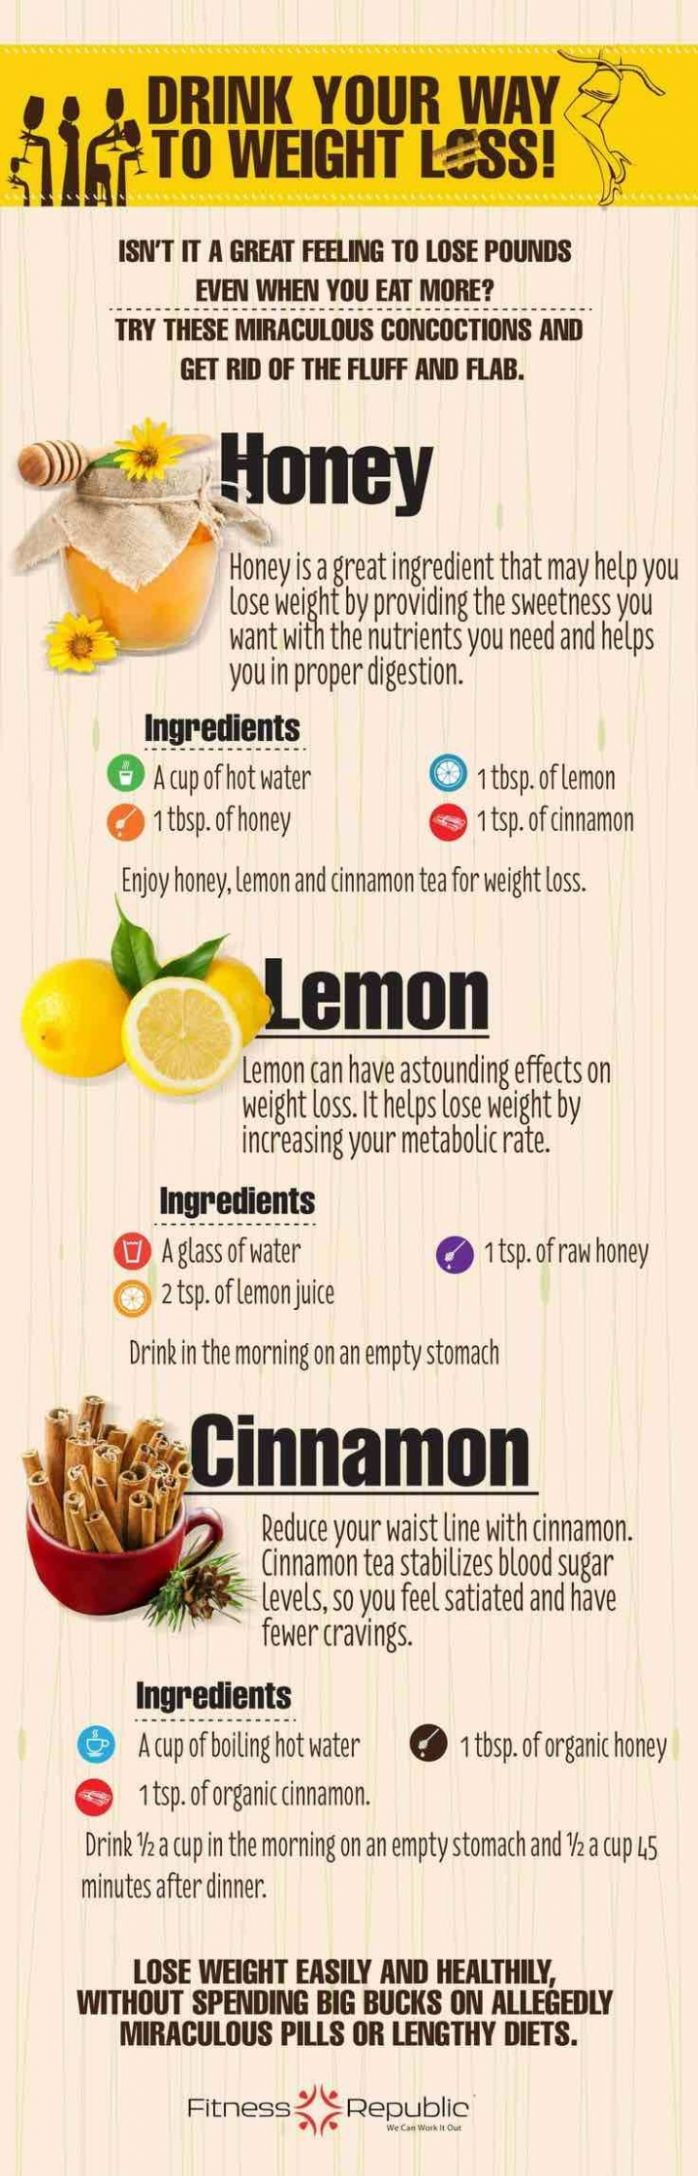 Juicing Recipes for Detoxing and Weight Loss - MODwedding - Juicer Recipes Weight Loss Plan